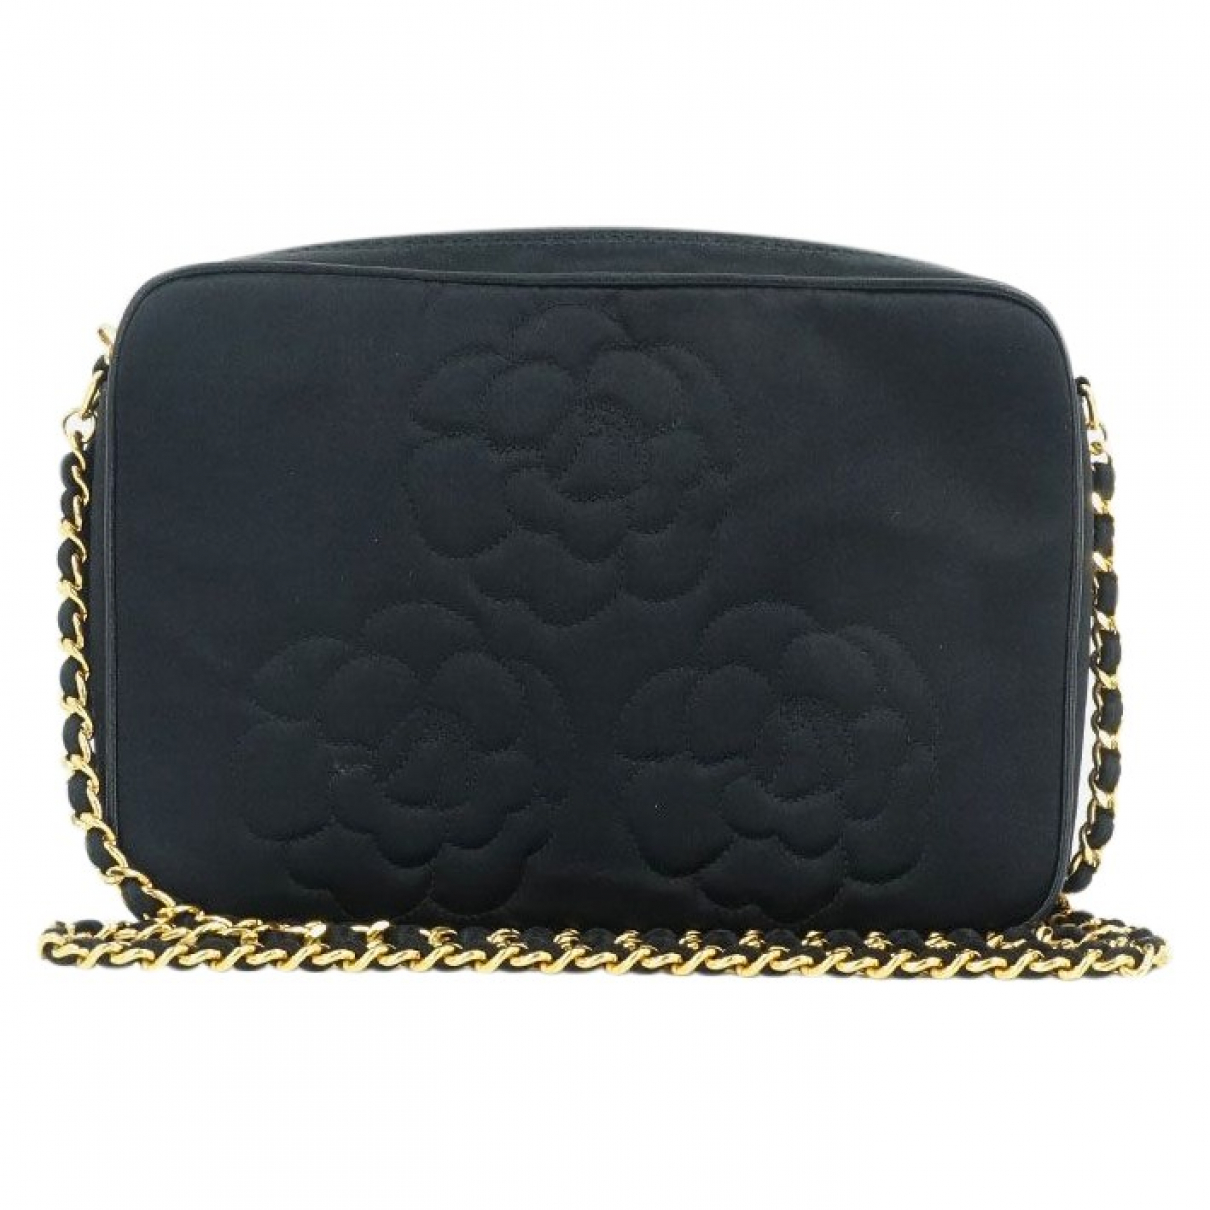 Chanel \N Black Silk handbag for Women \N